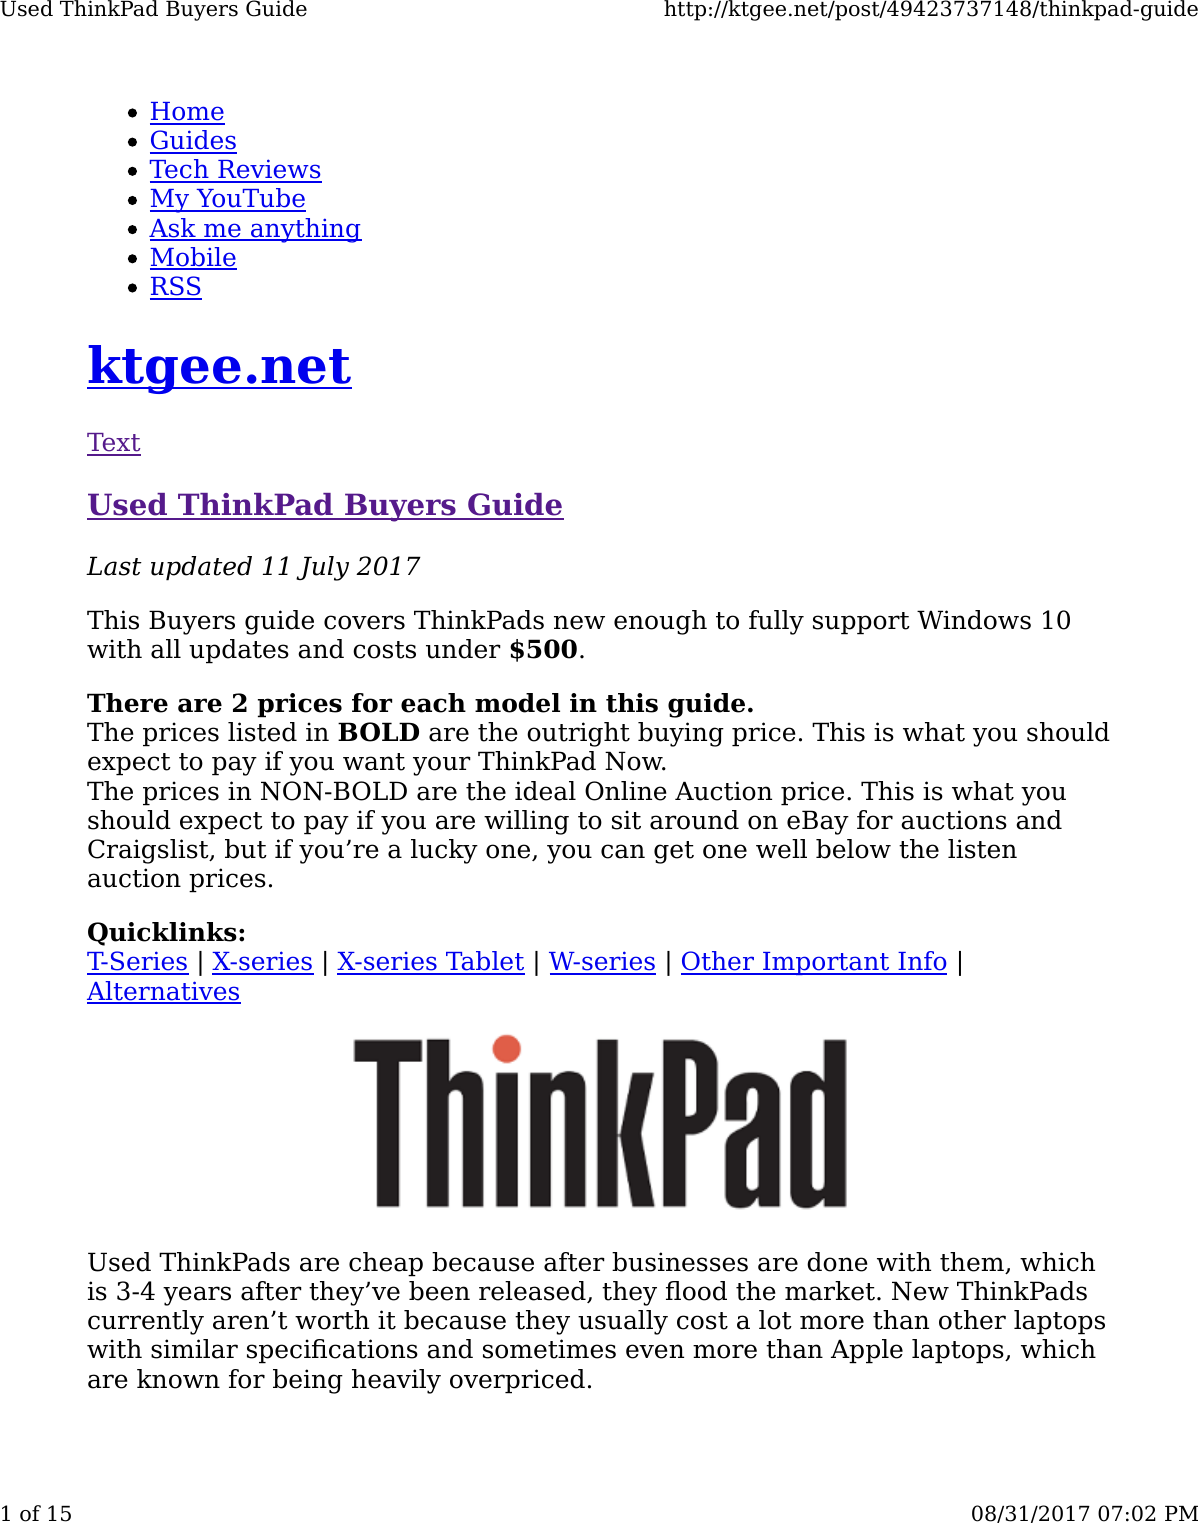 Used Thinkpad Buyers Guide